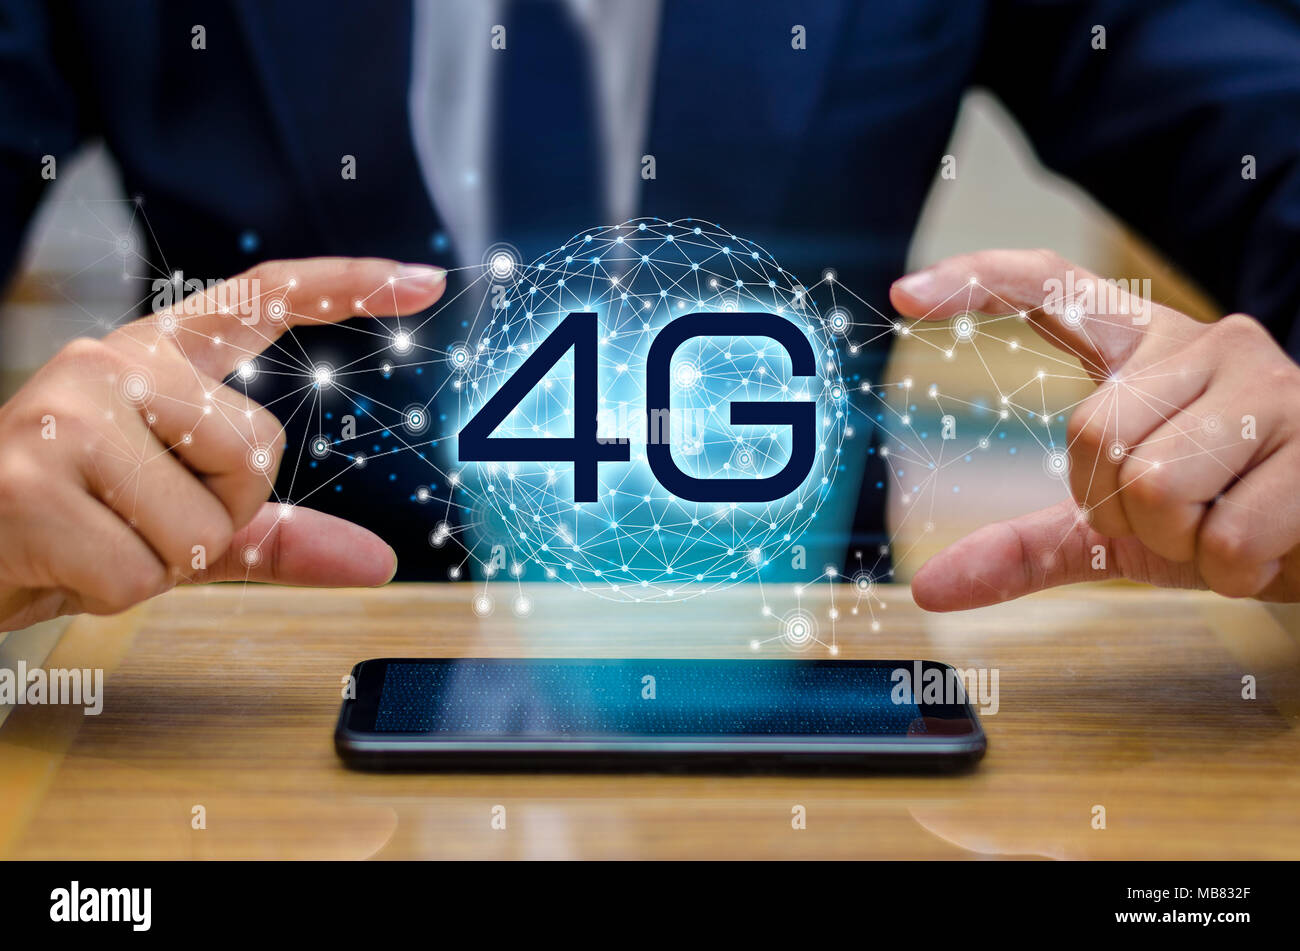 phone 4g Earth businessman connect worldwide waiter hand